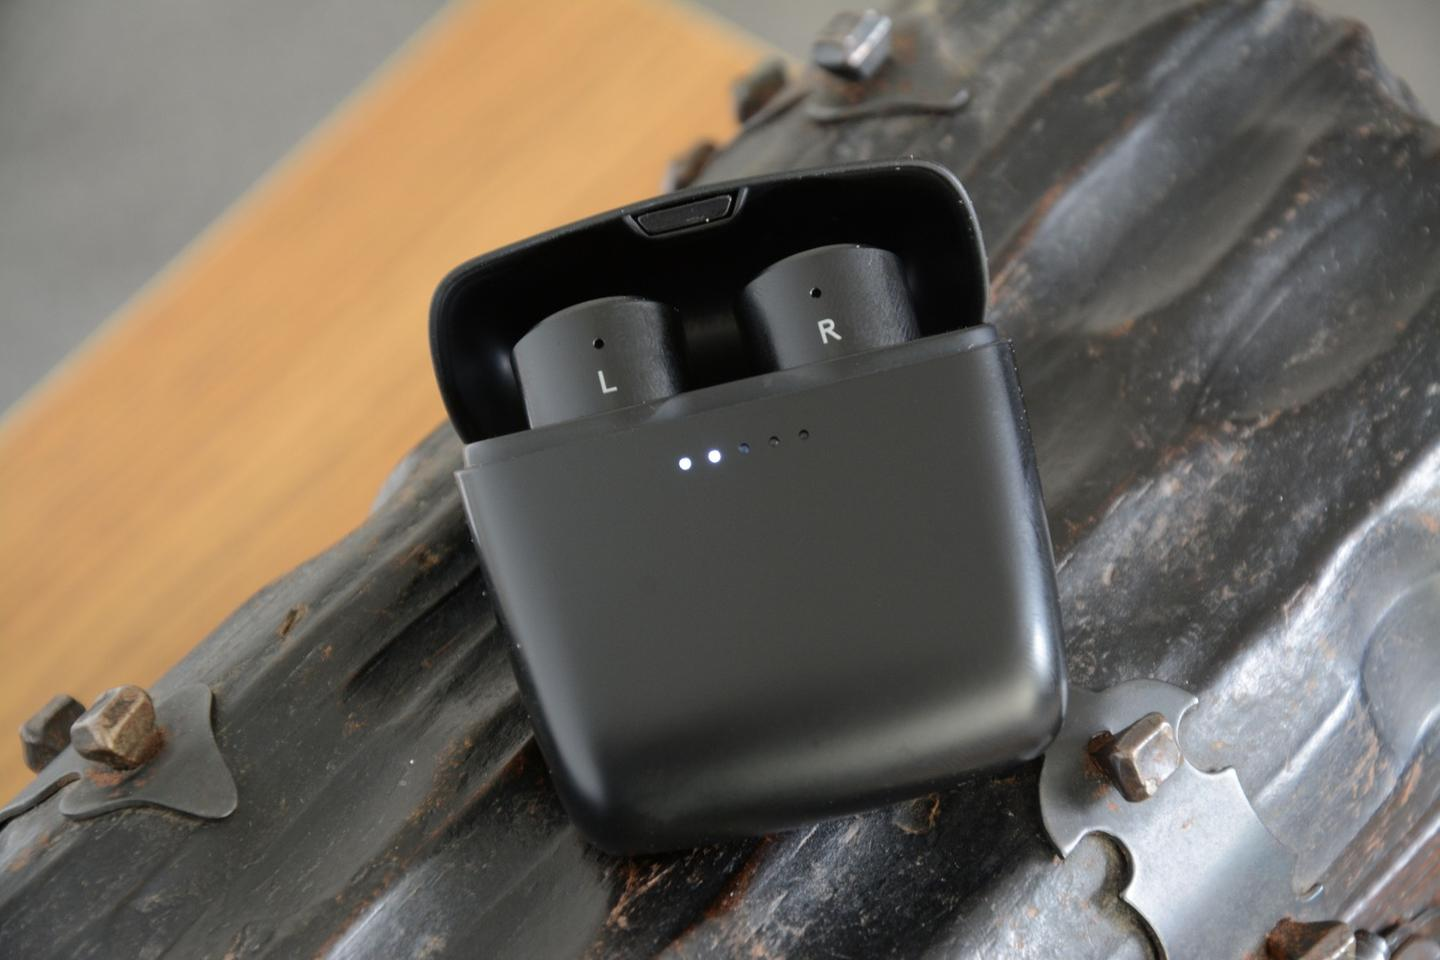 The Melomania 1 earphones are placed in the charging case and the light ring surrounding the multipurpose button begins to pulse, indicating charging is underway